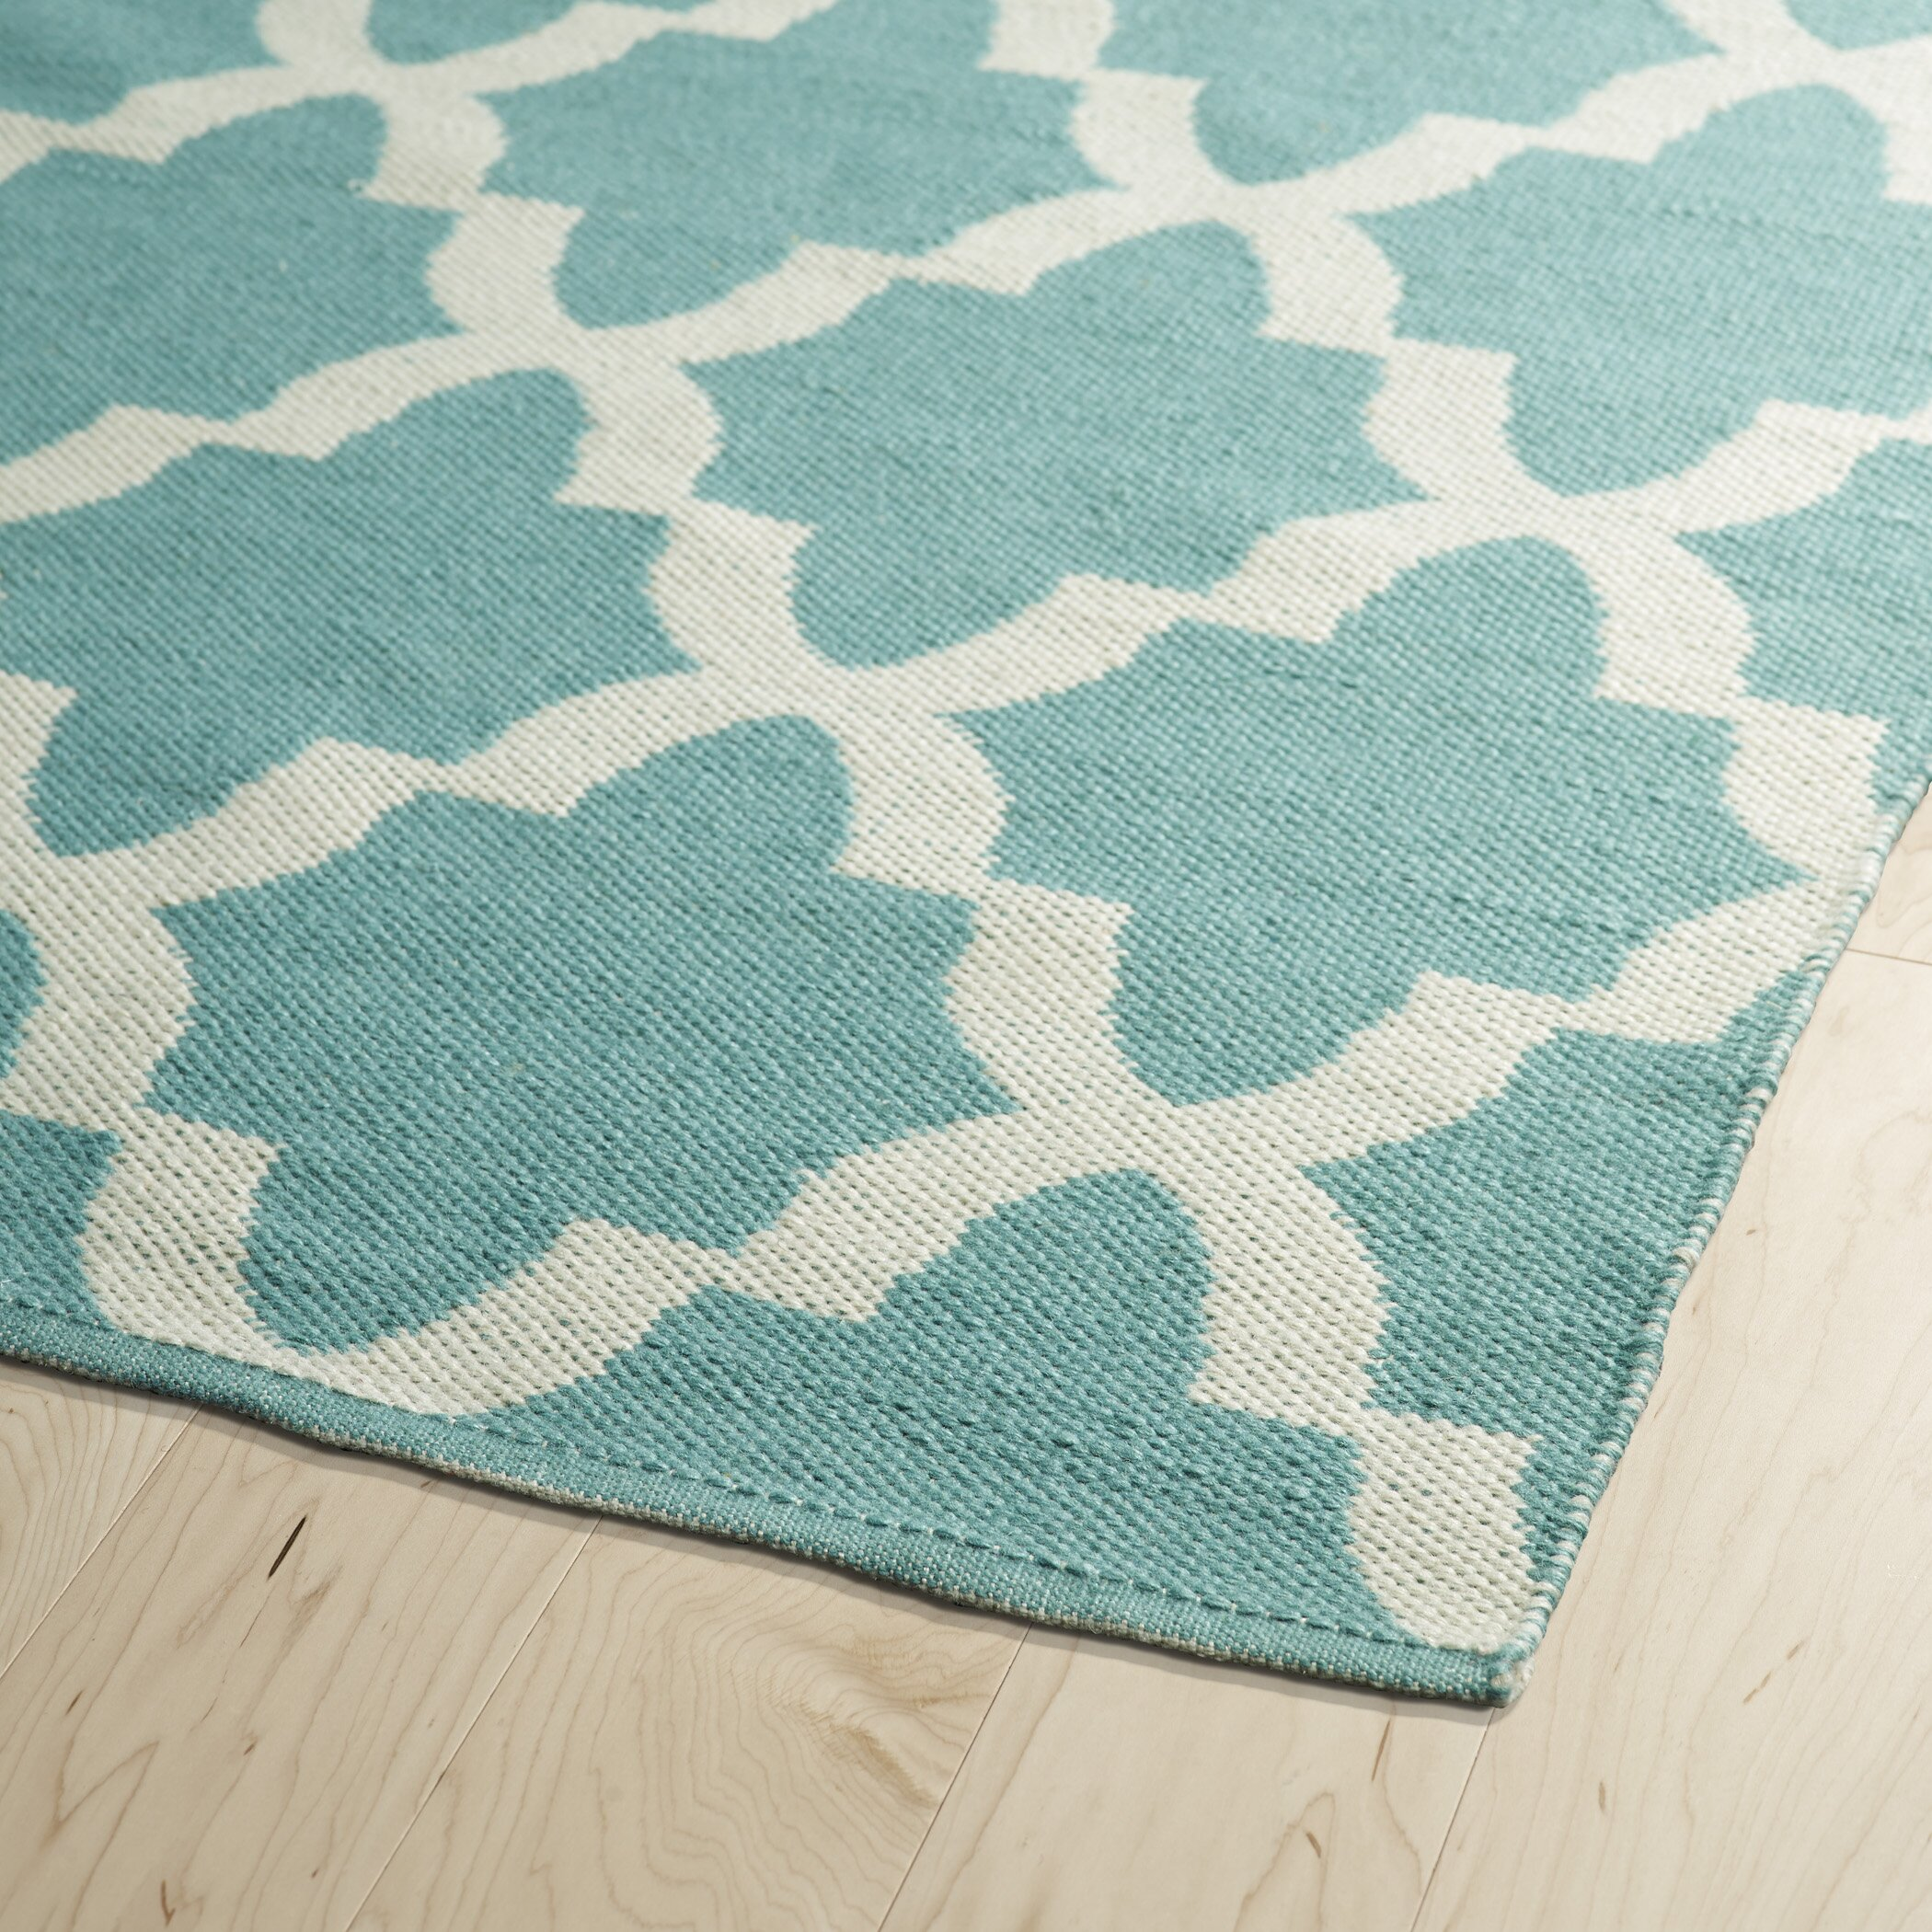 Kaleen Brisa Teal Amp White Indoor Outdoor Area Rug